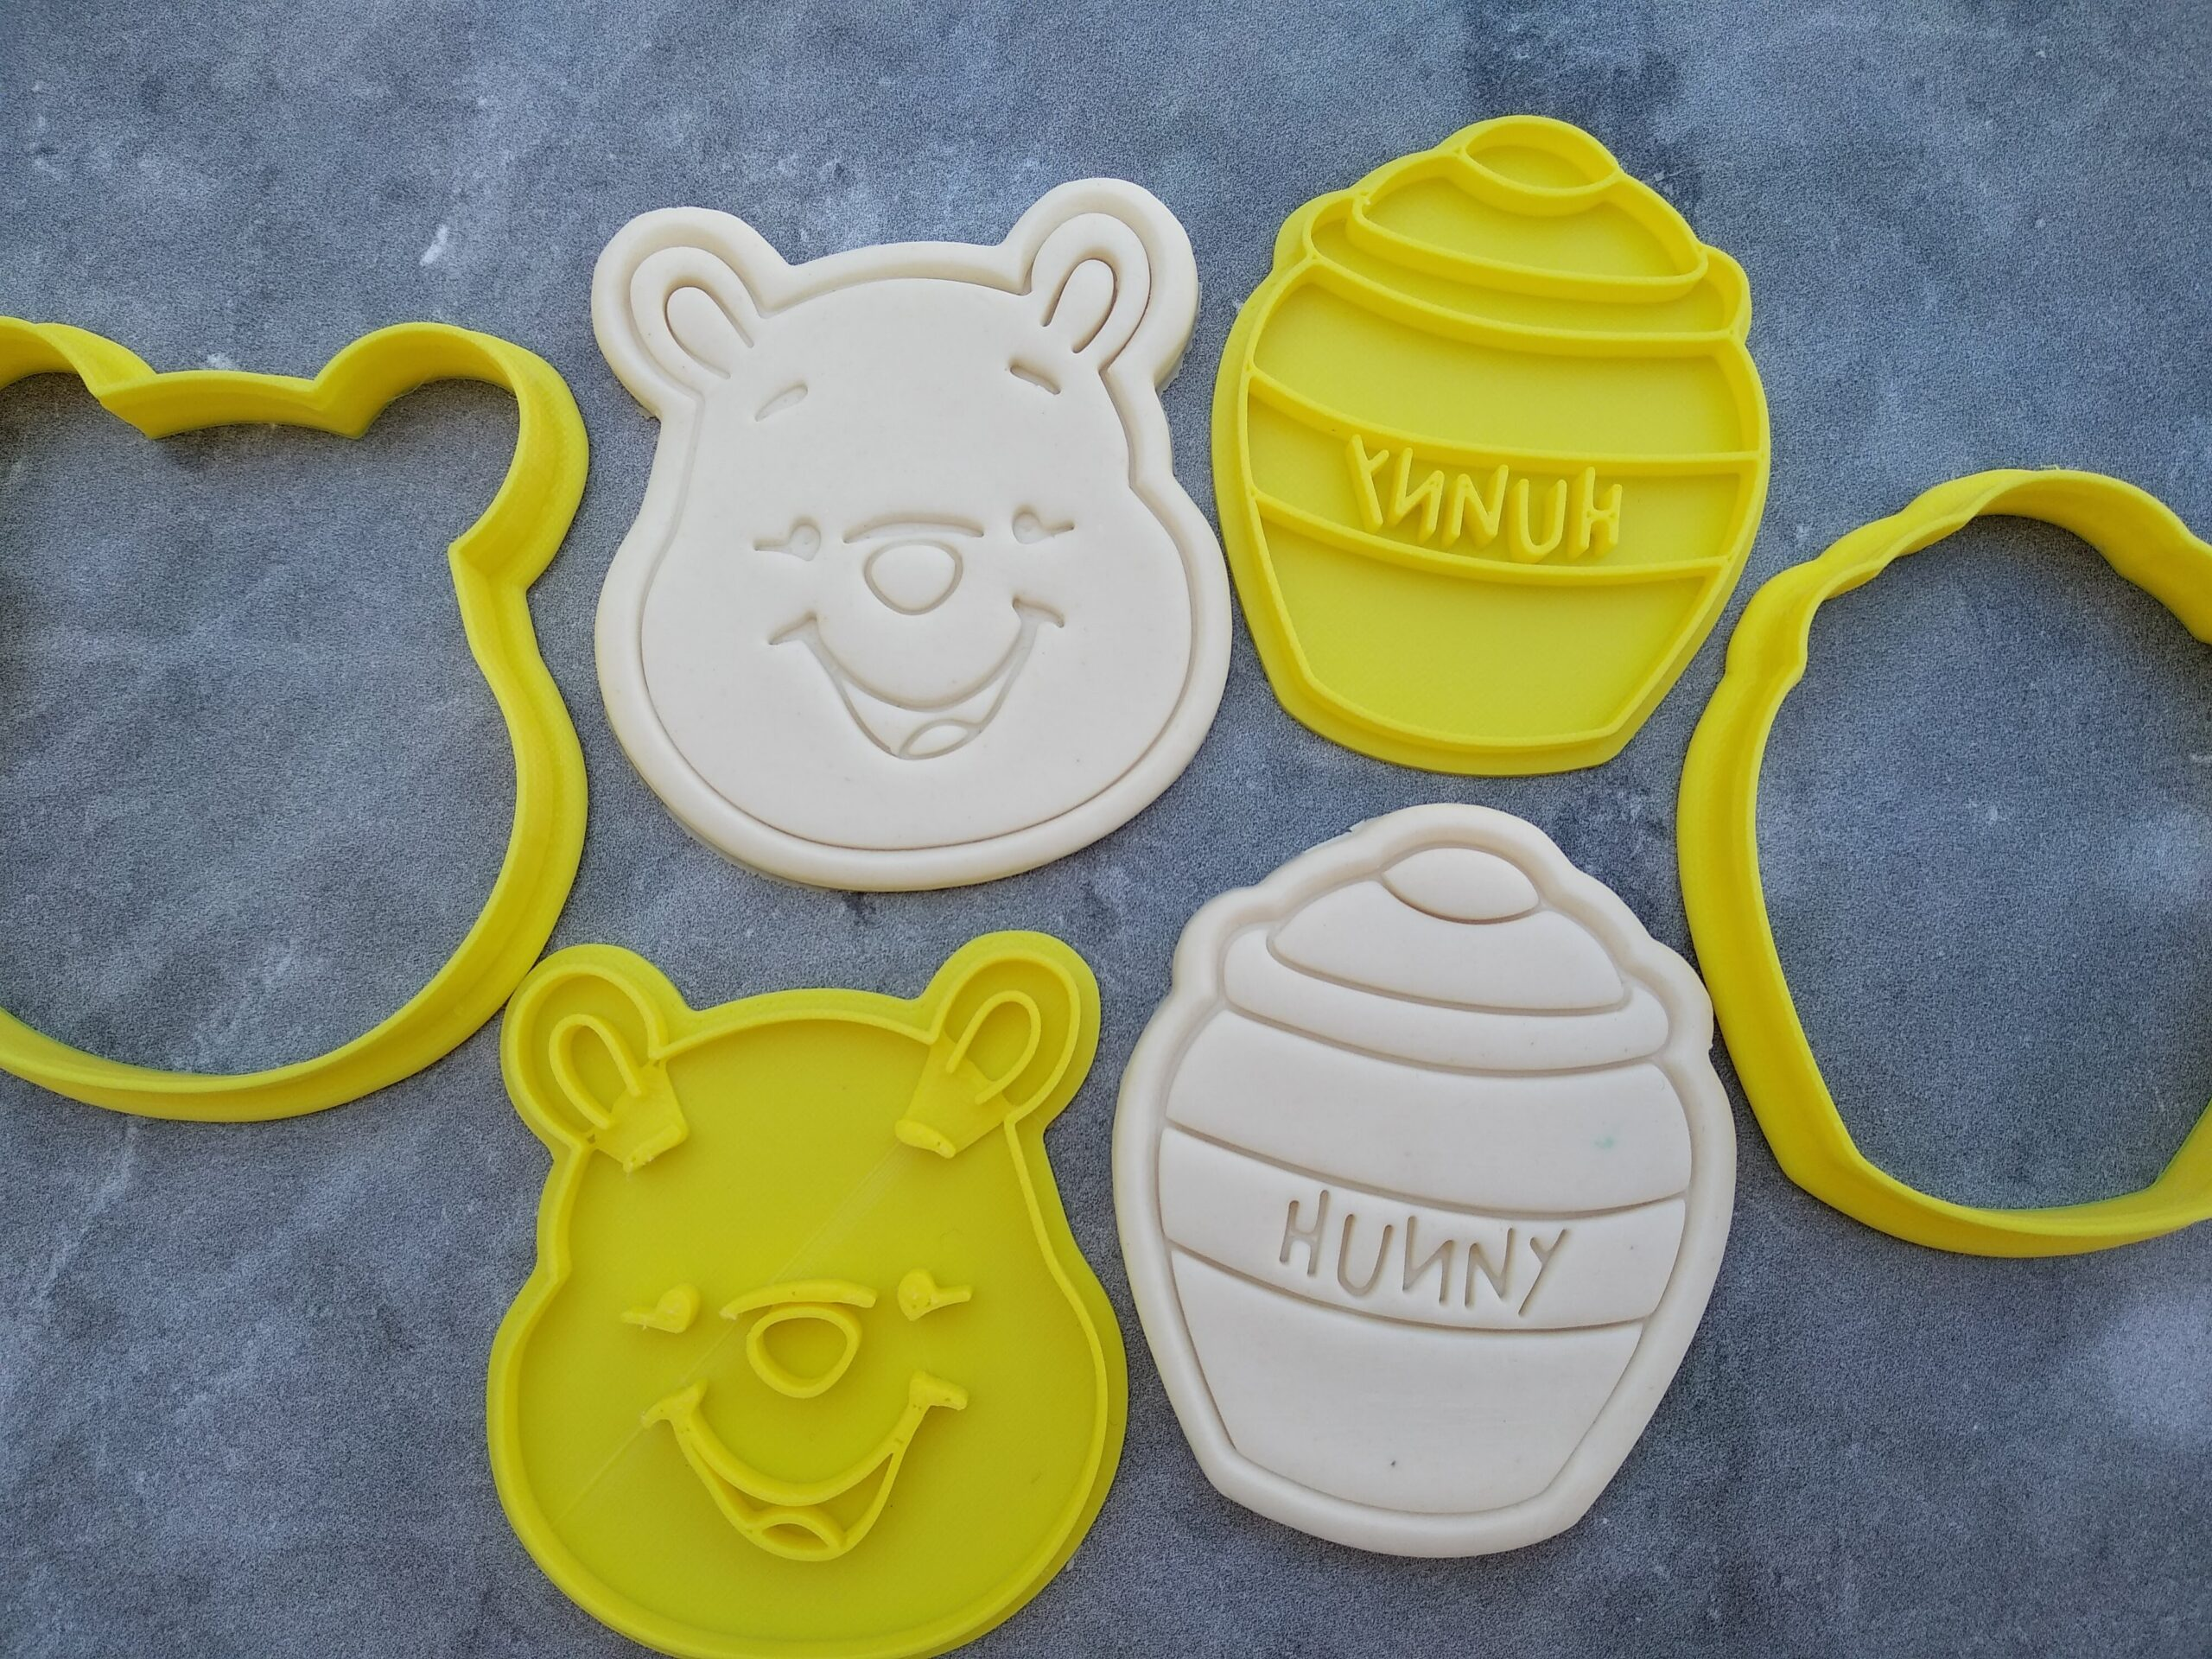 Winnie the Pooh Bear and Hunny Pot Cookie Cutter and Fondant Stamp Embosser Set Honey Pot